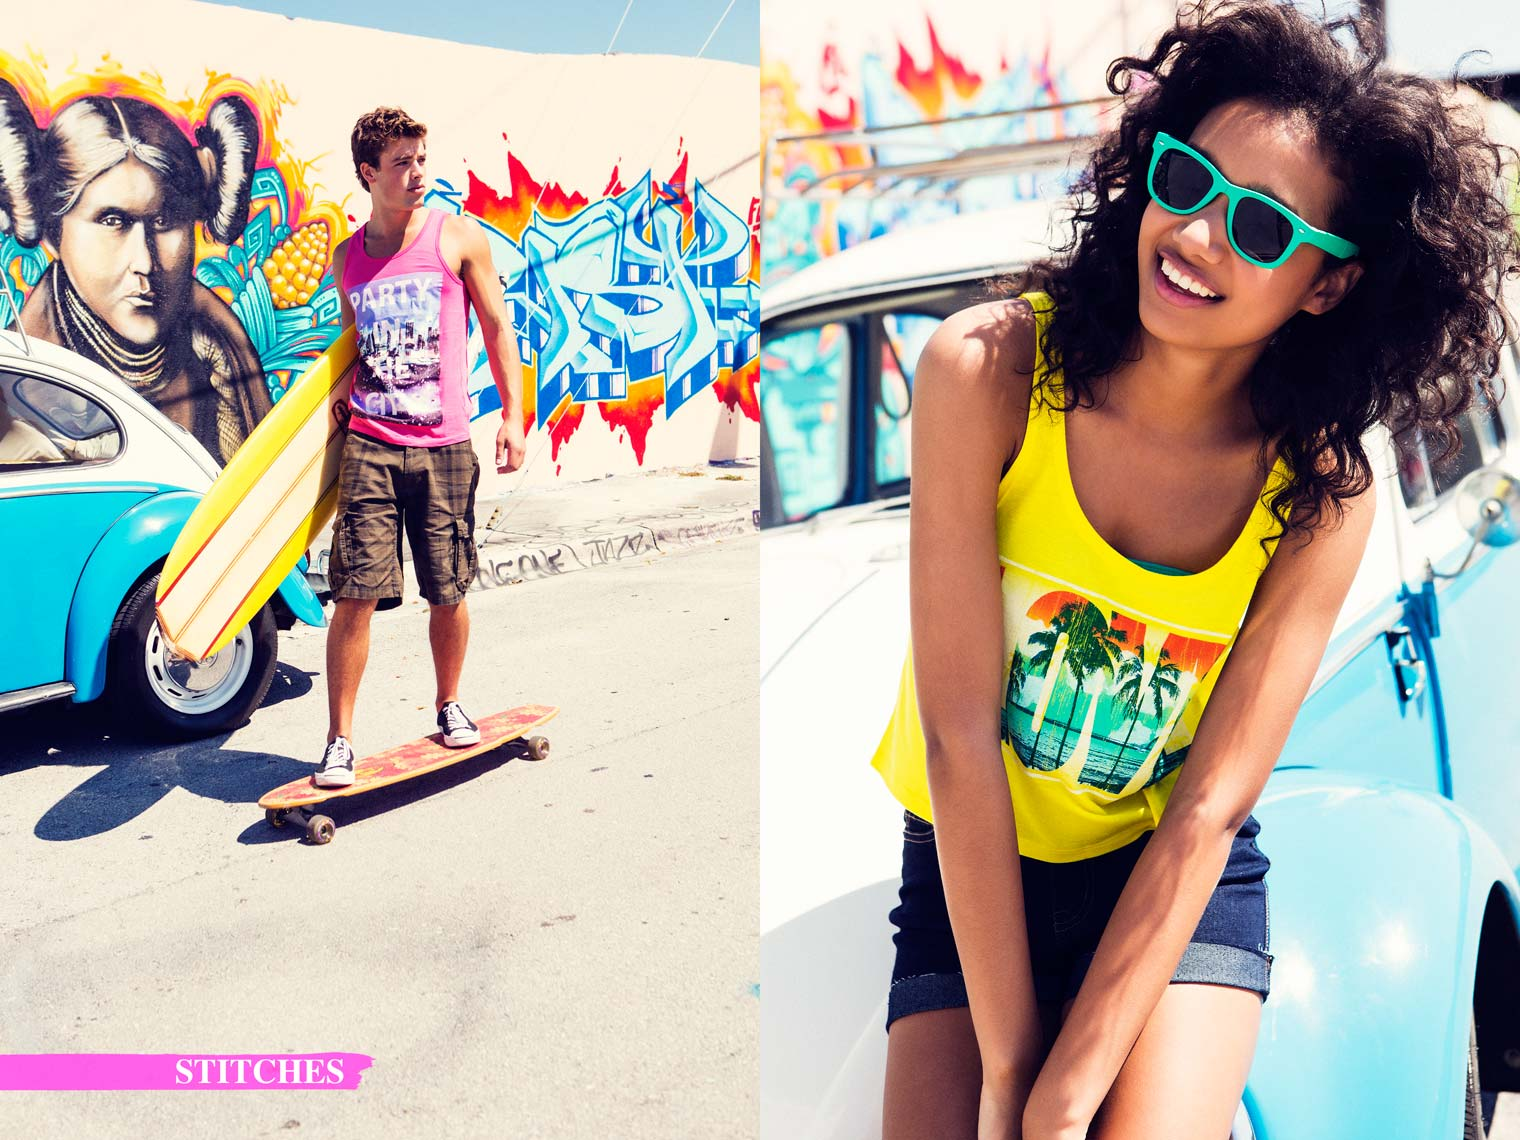 Chris-Hunt-Photography-Fashion-Advertising-Miami-Grafitti-573